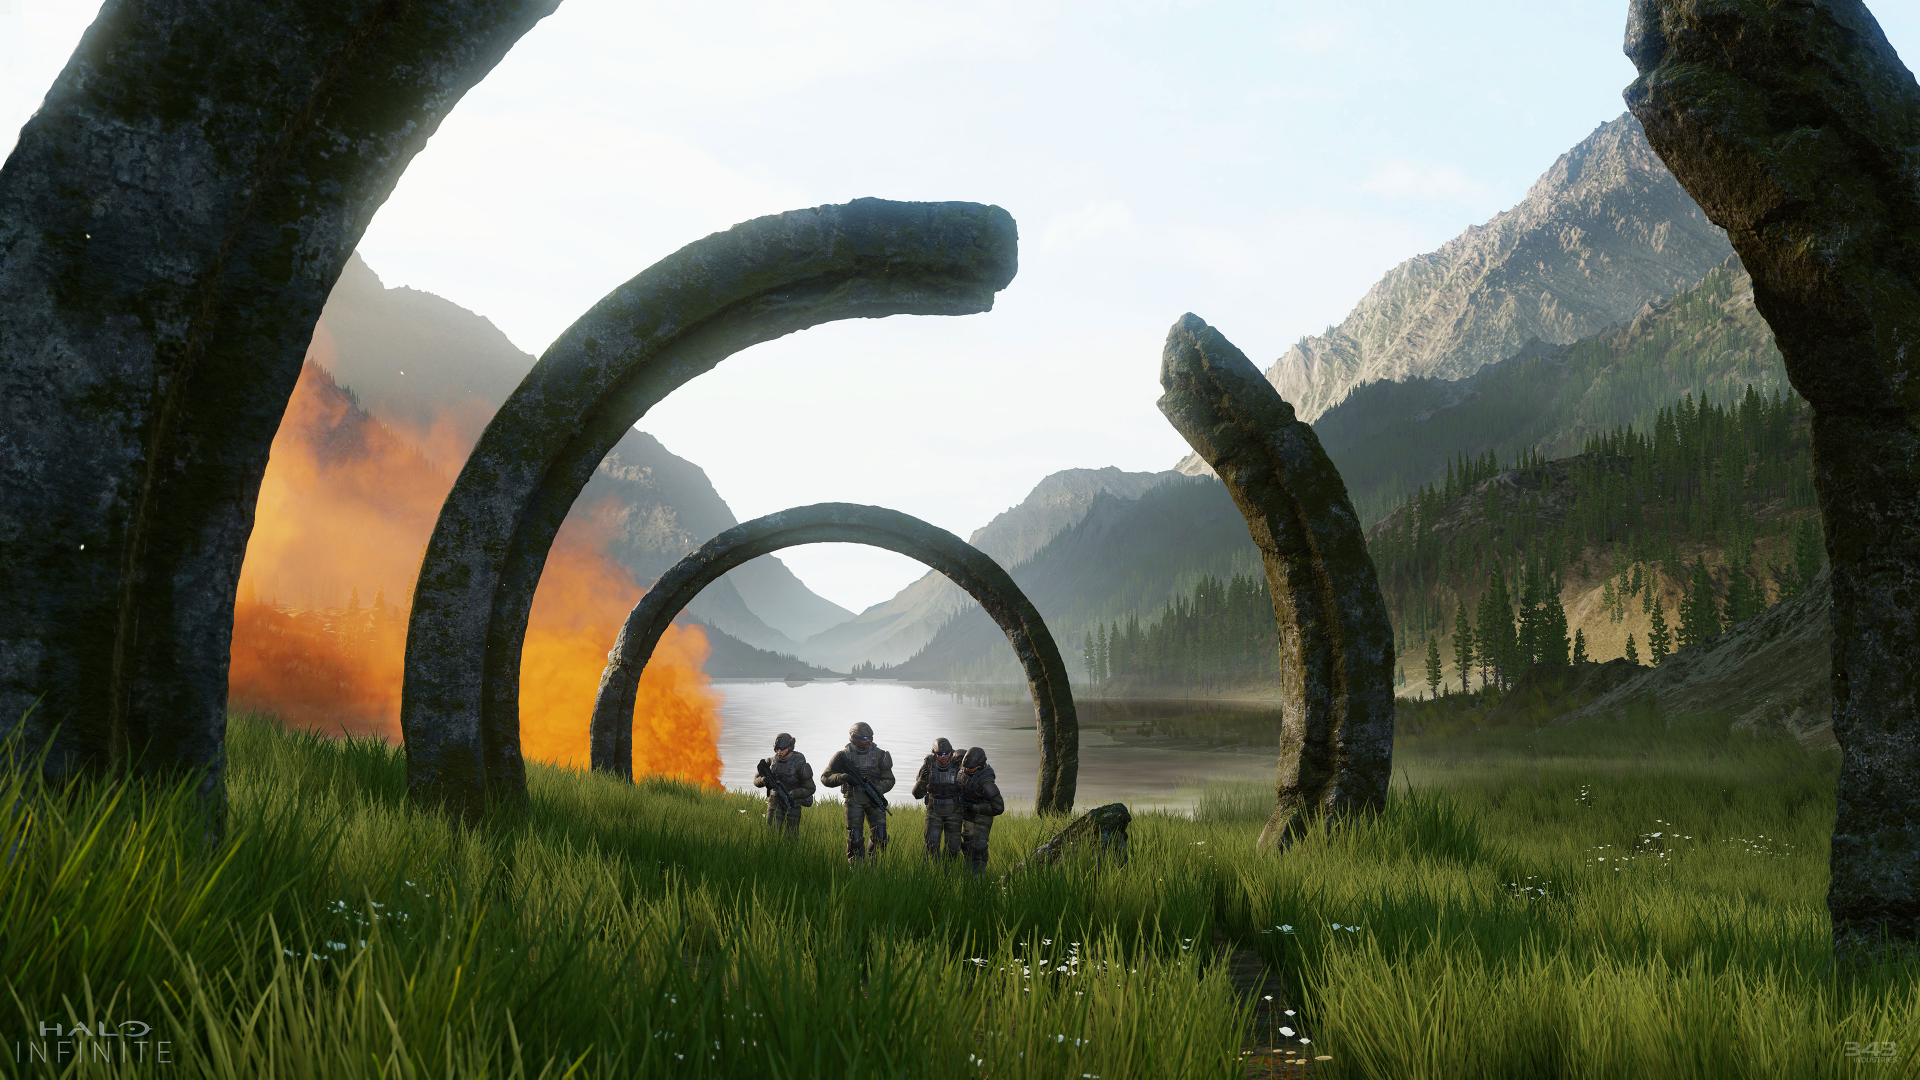 Wallpaper Halo Infinite E3 2018 Screenshot 4k Games 19005